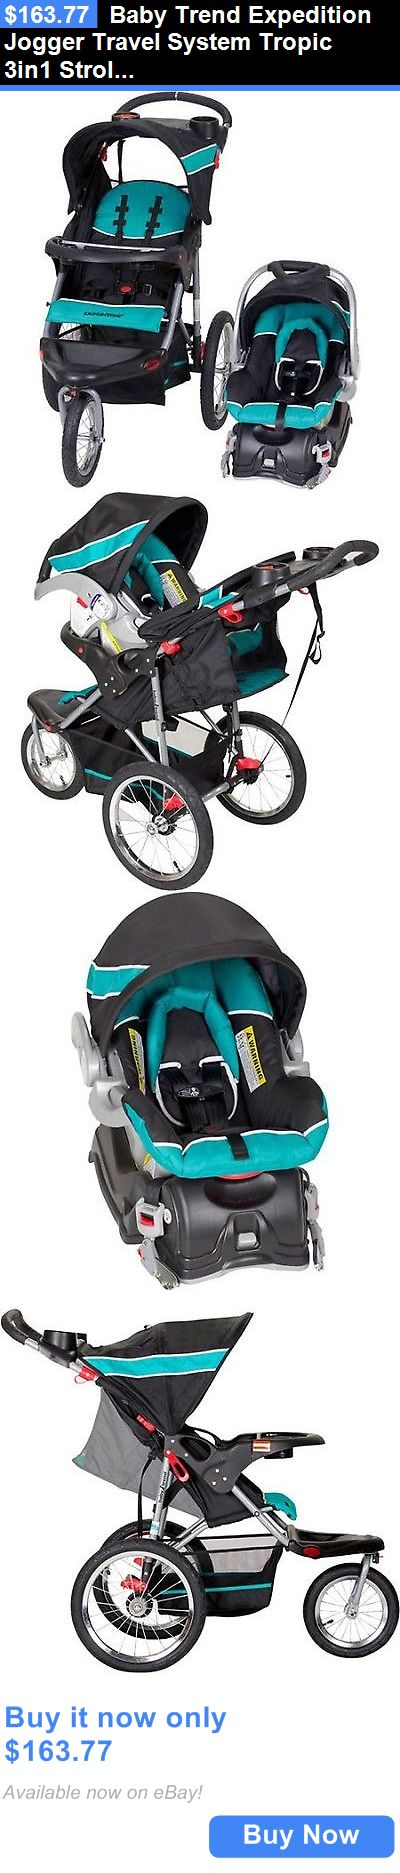 baby kid stuff: Baby Trend Expedition Jogger Travel System Tropic 3In1 Stroller Car Seat New BUY IT NOW ONLY: $163.77